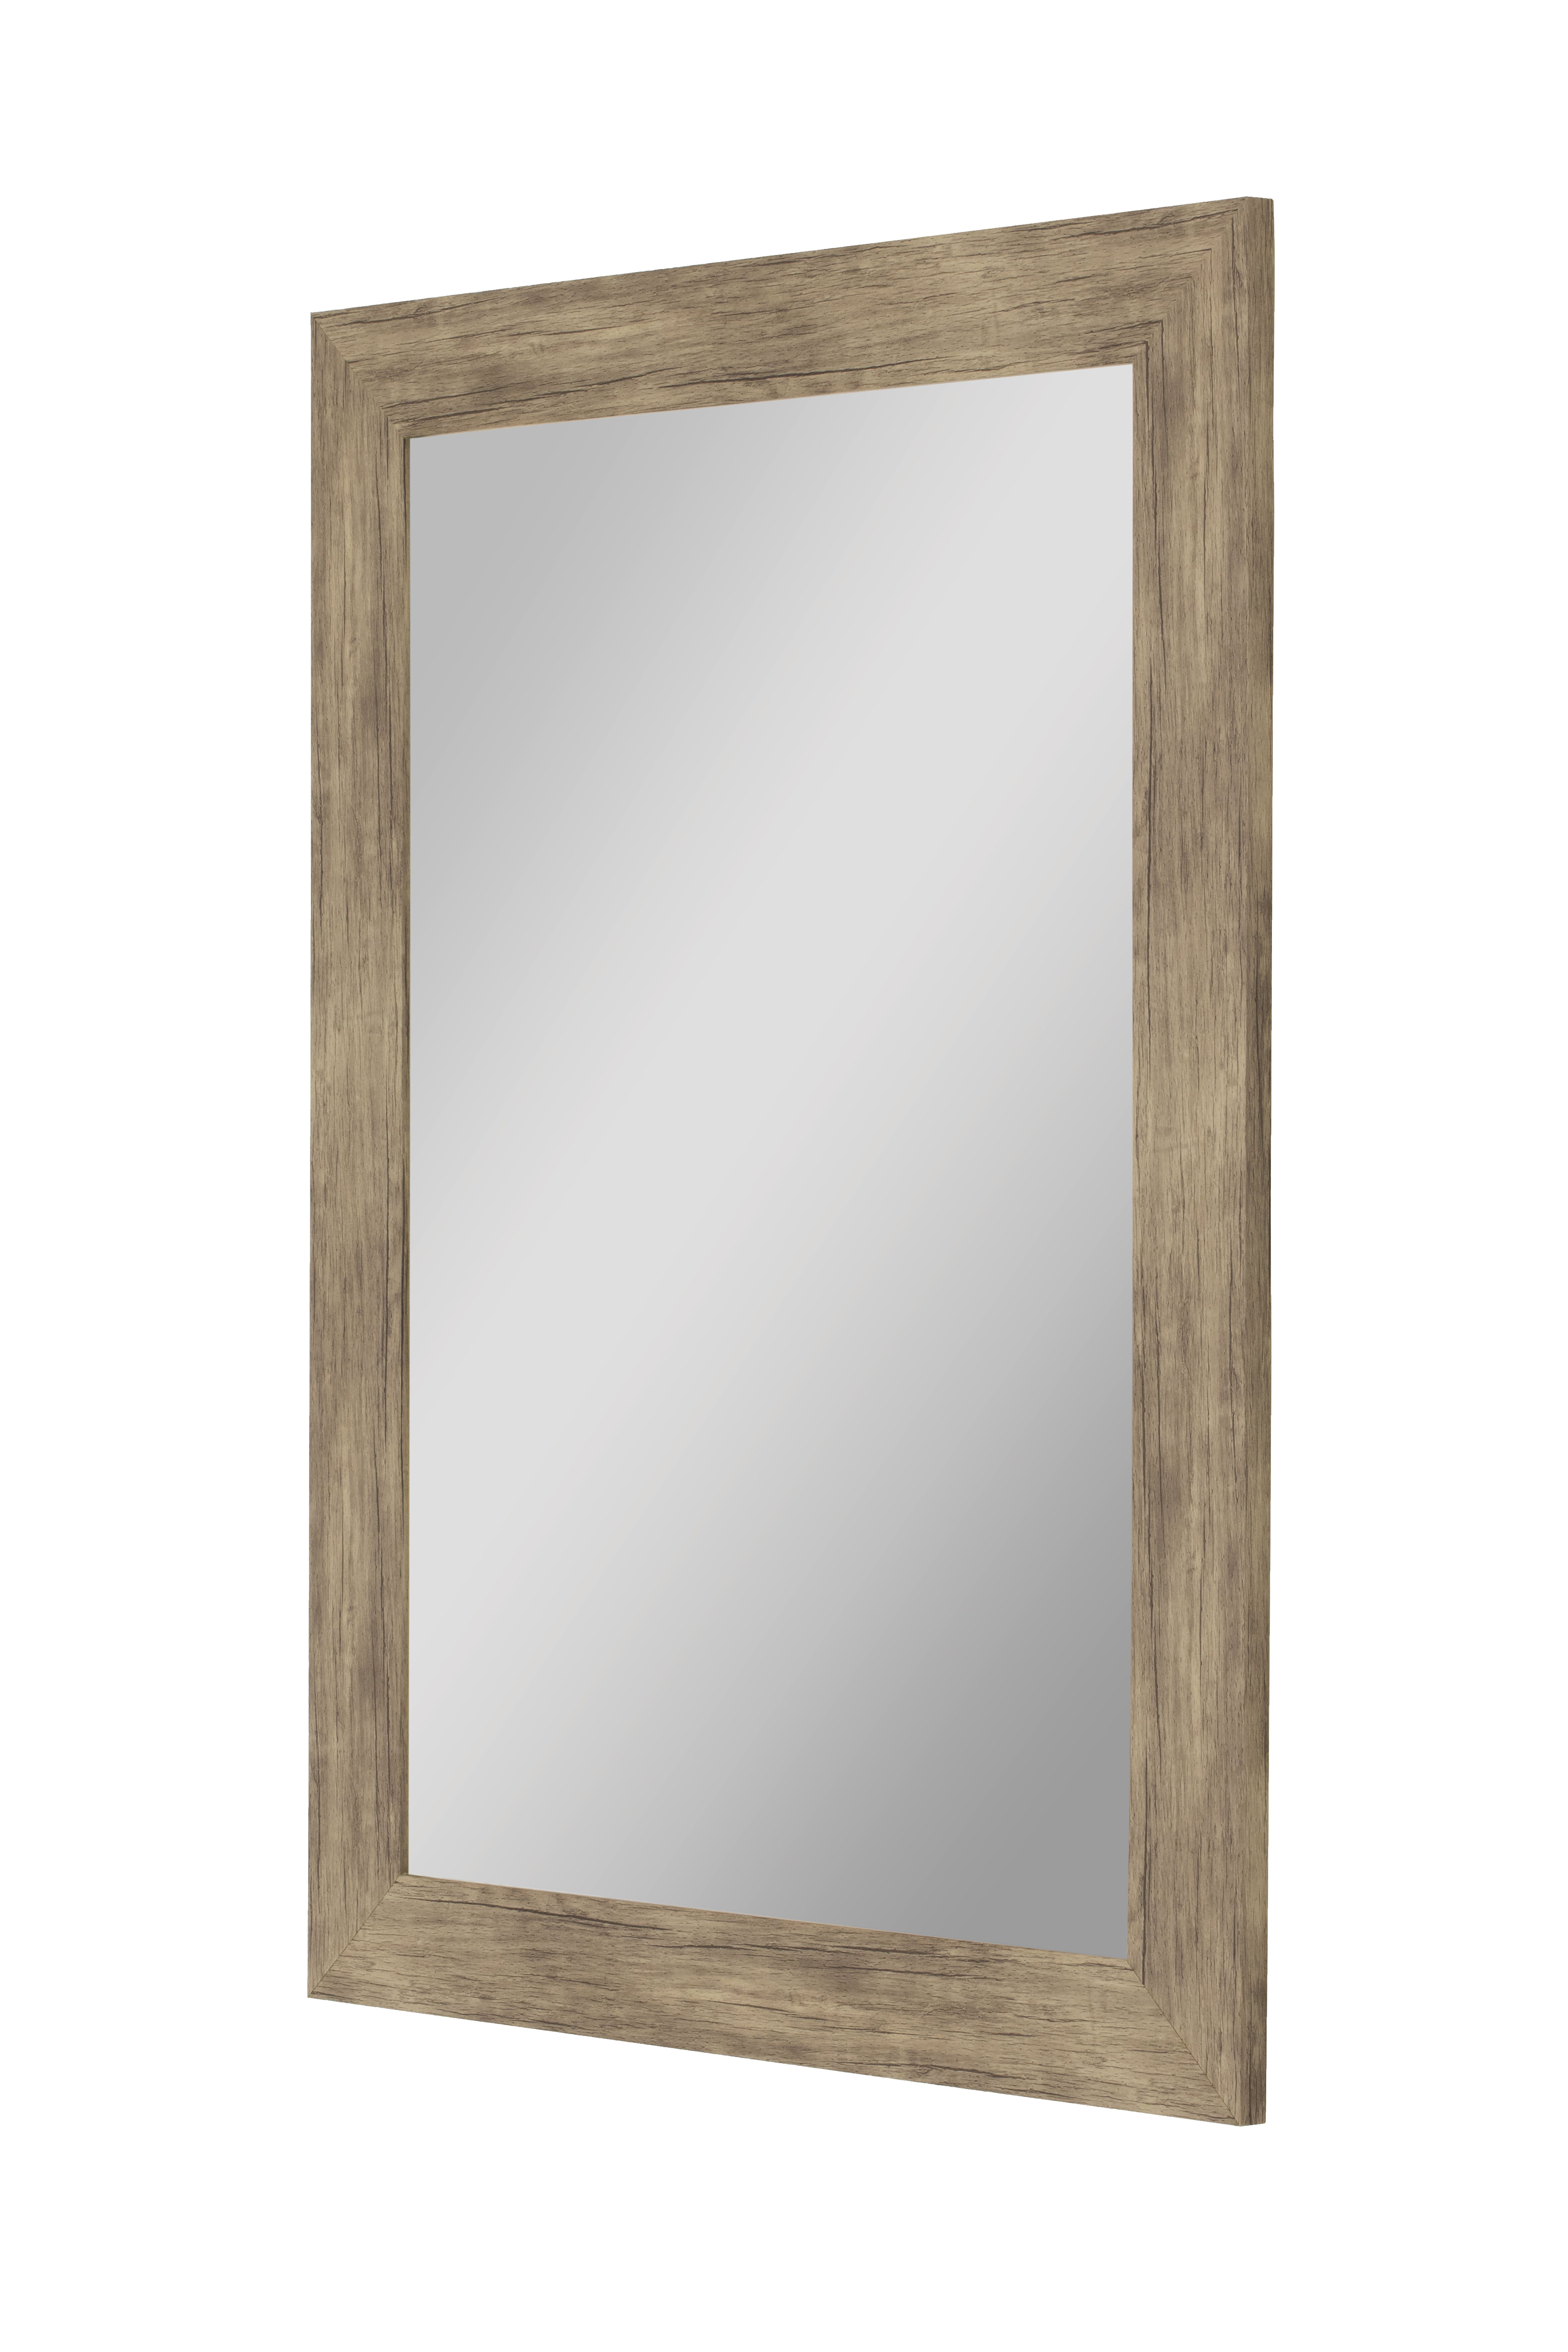 Modern Furniture And Decor For Your Home And Office | Dana's For Dalessio Wide Tall Full Length Mirrors (View 14 of 30)